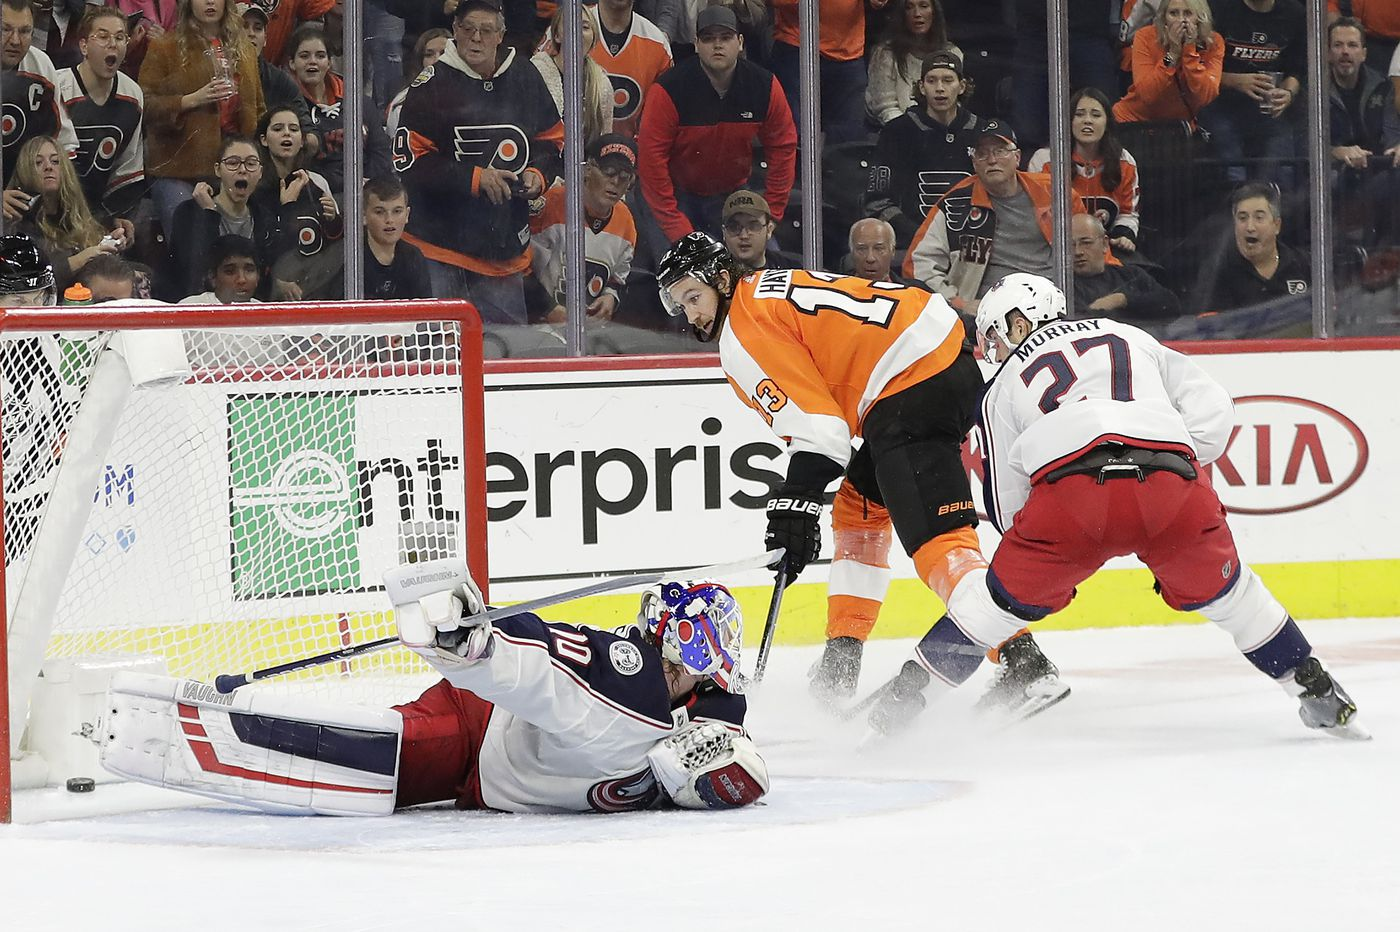 Flyers expect playoff-type atmosphere for next two games, both vs. Columbus Blue Jackets